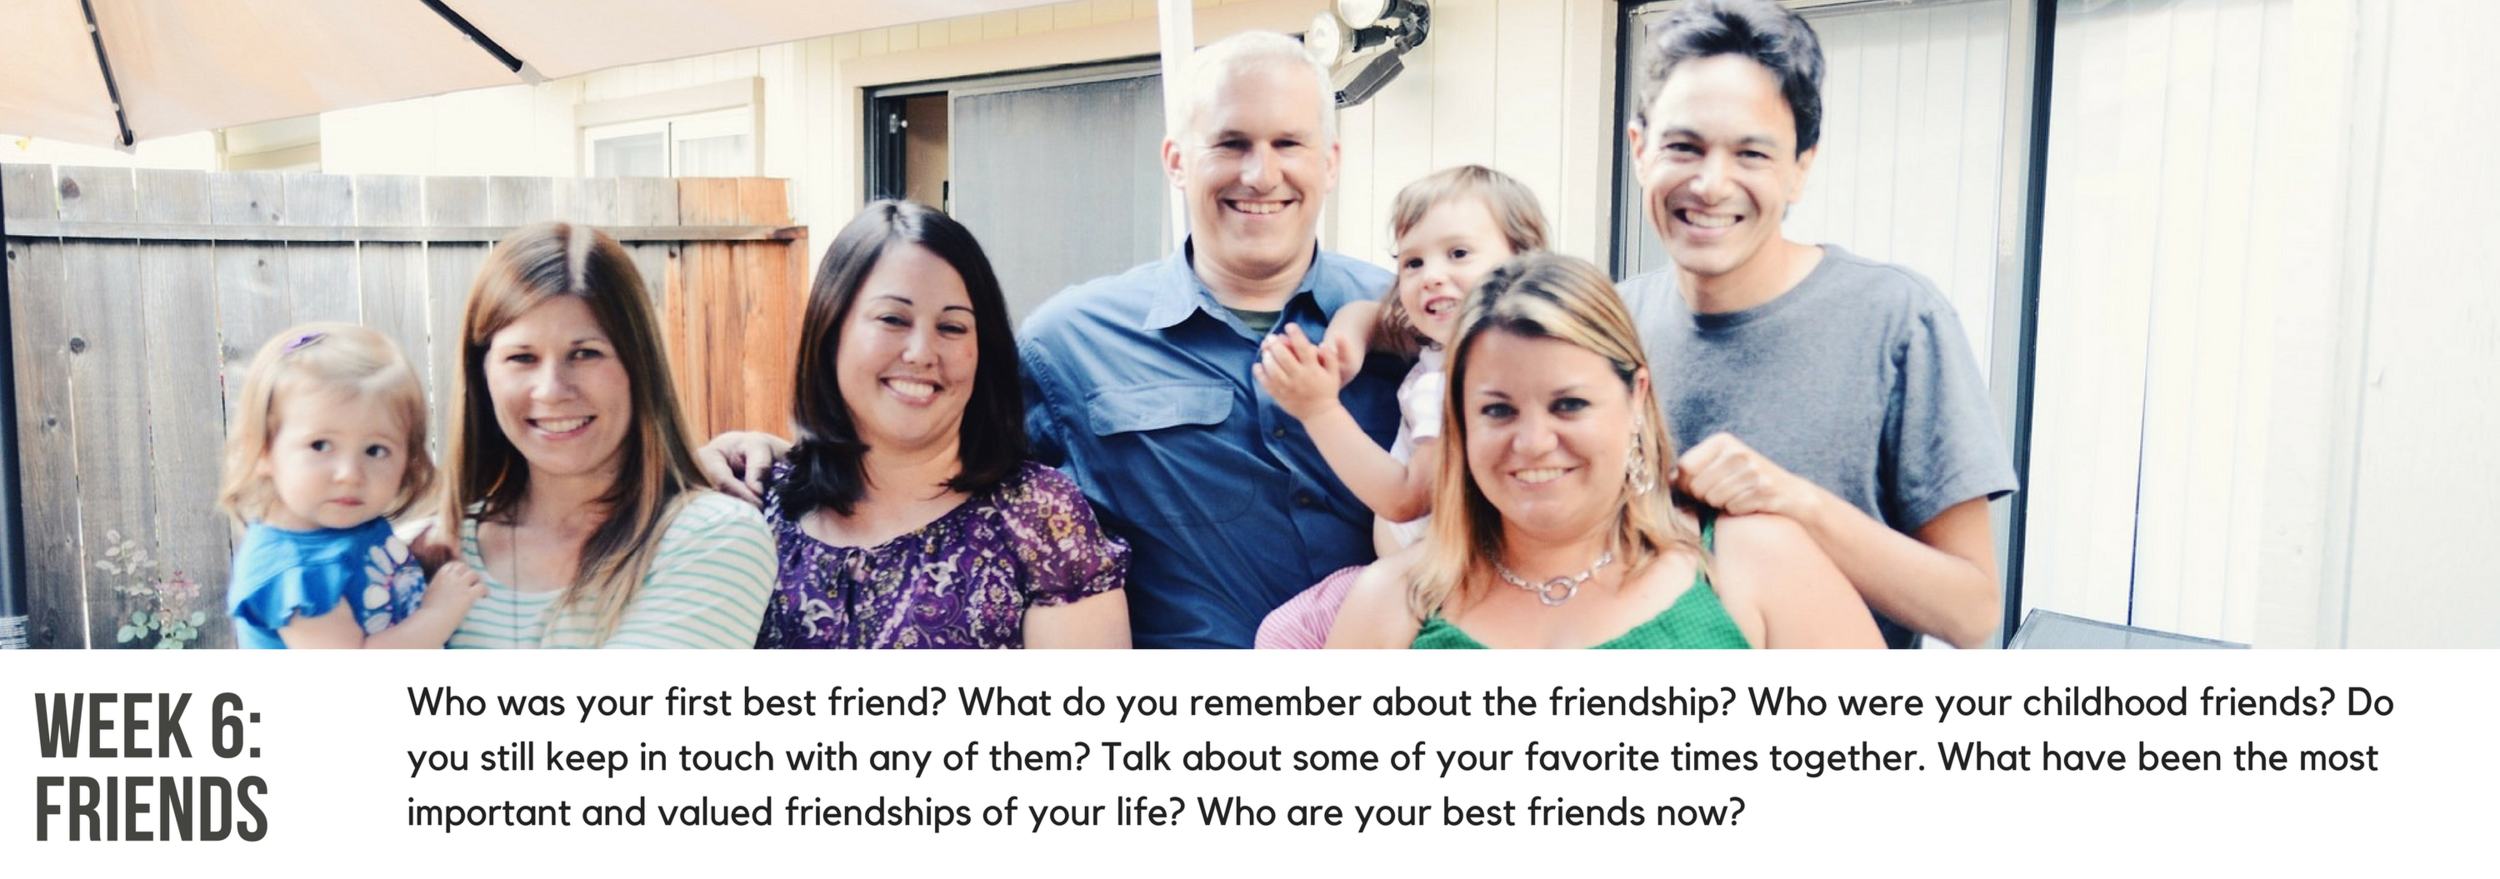 The Legacy Project - Week 6 prompt - friends.